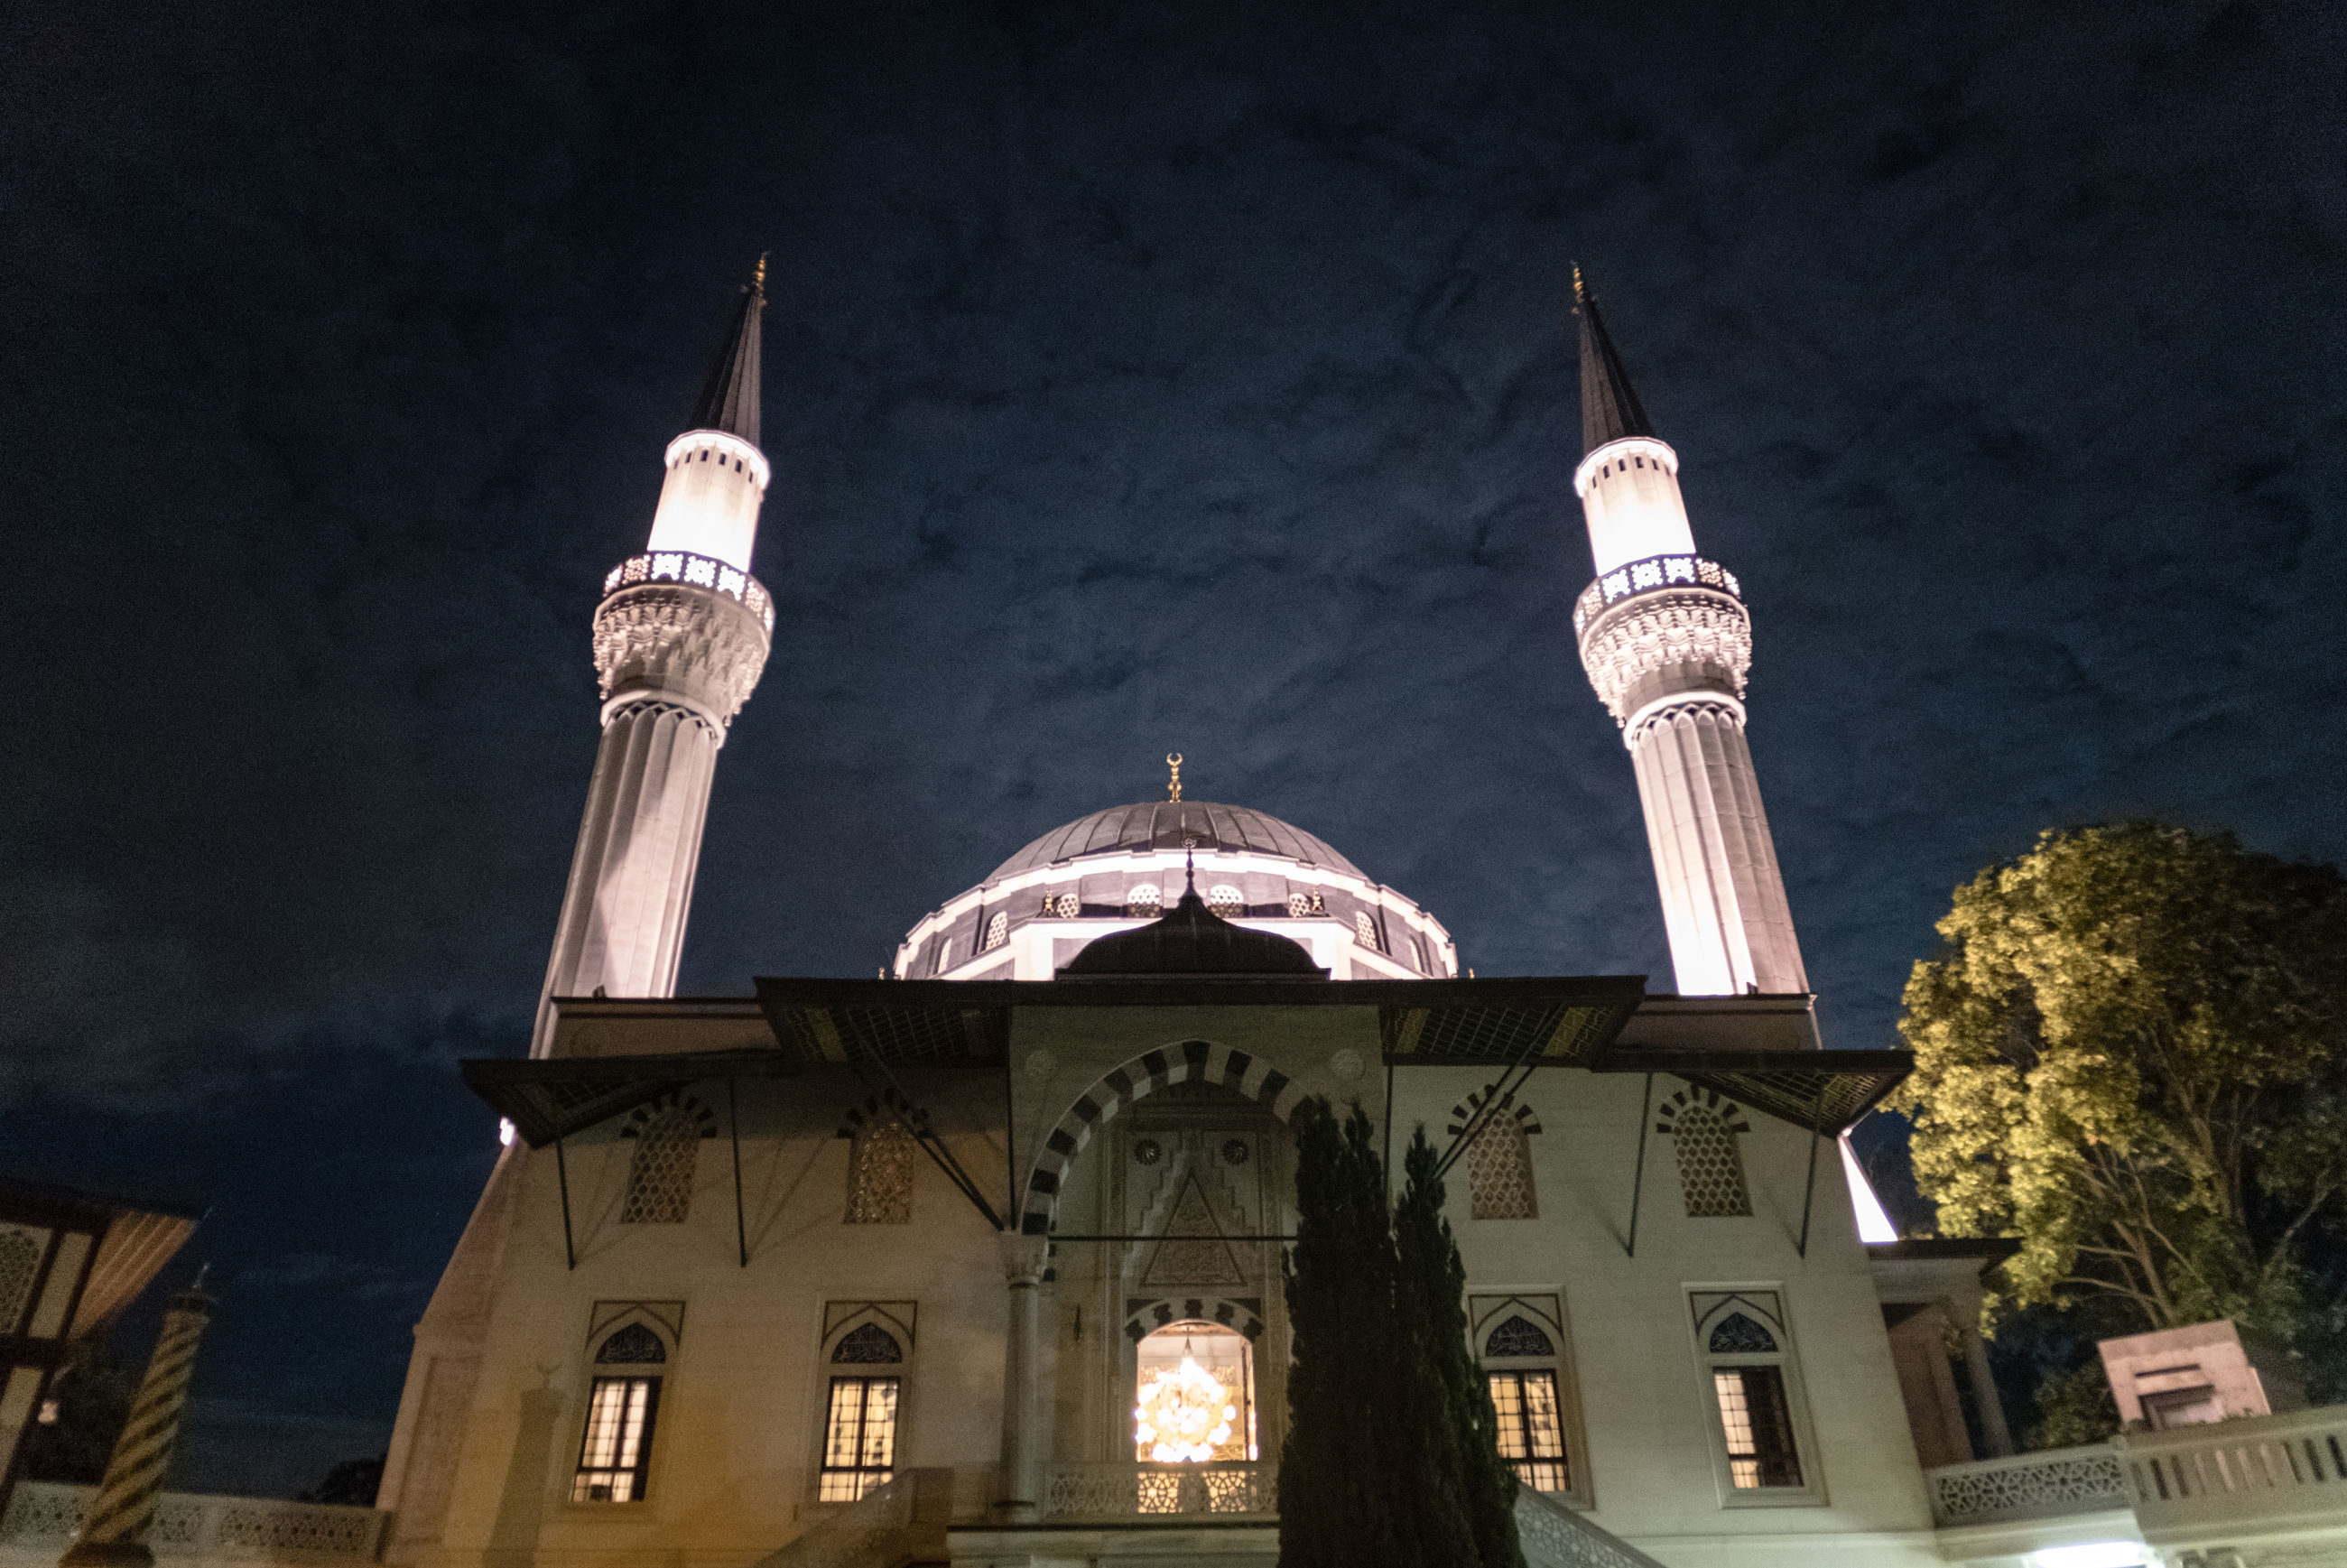 Low angle view of illuminated mosque against sky at night